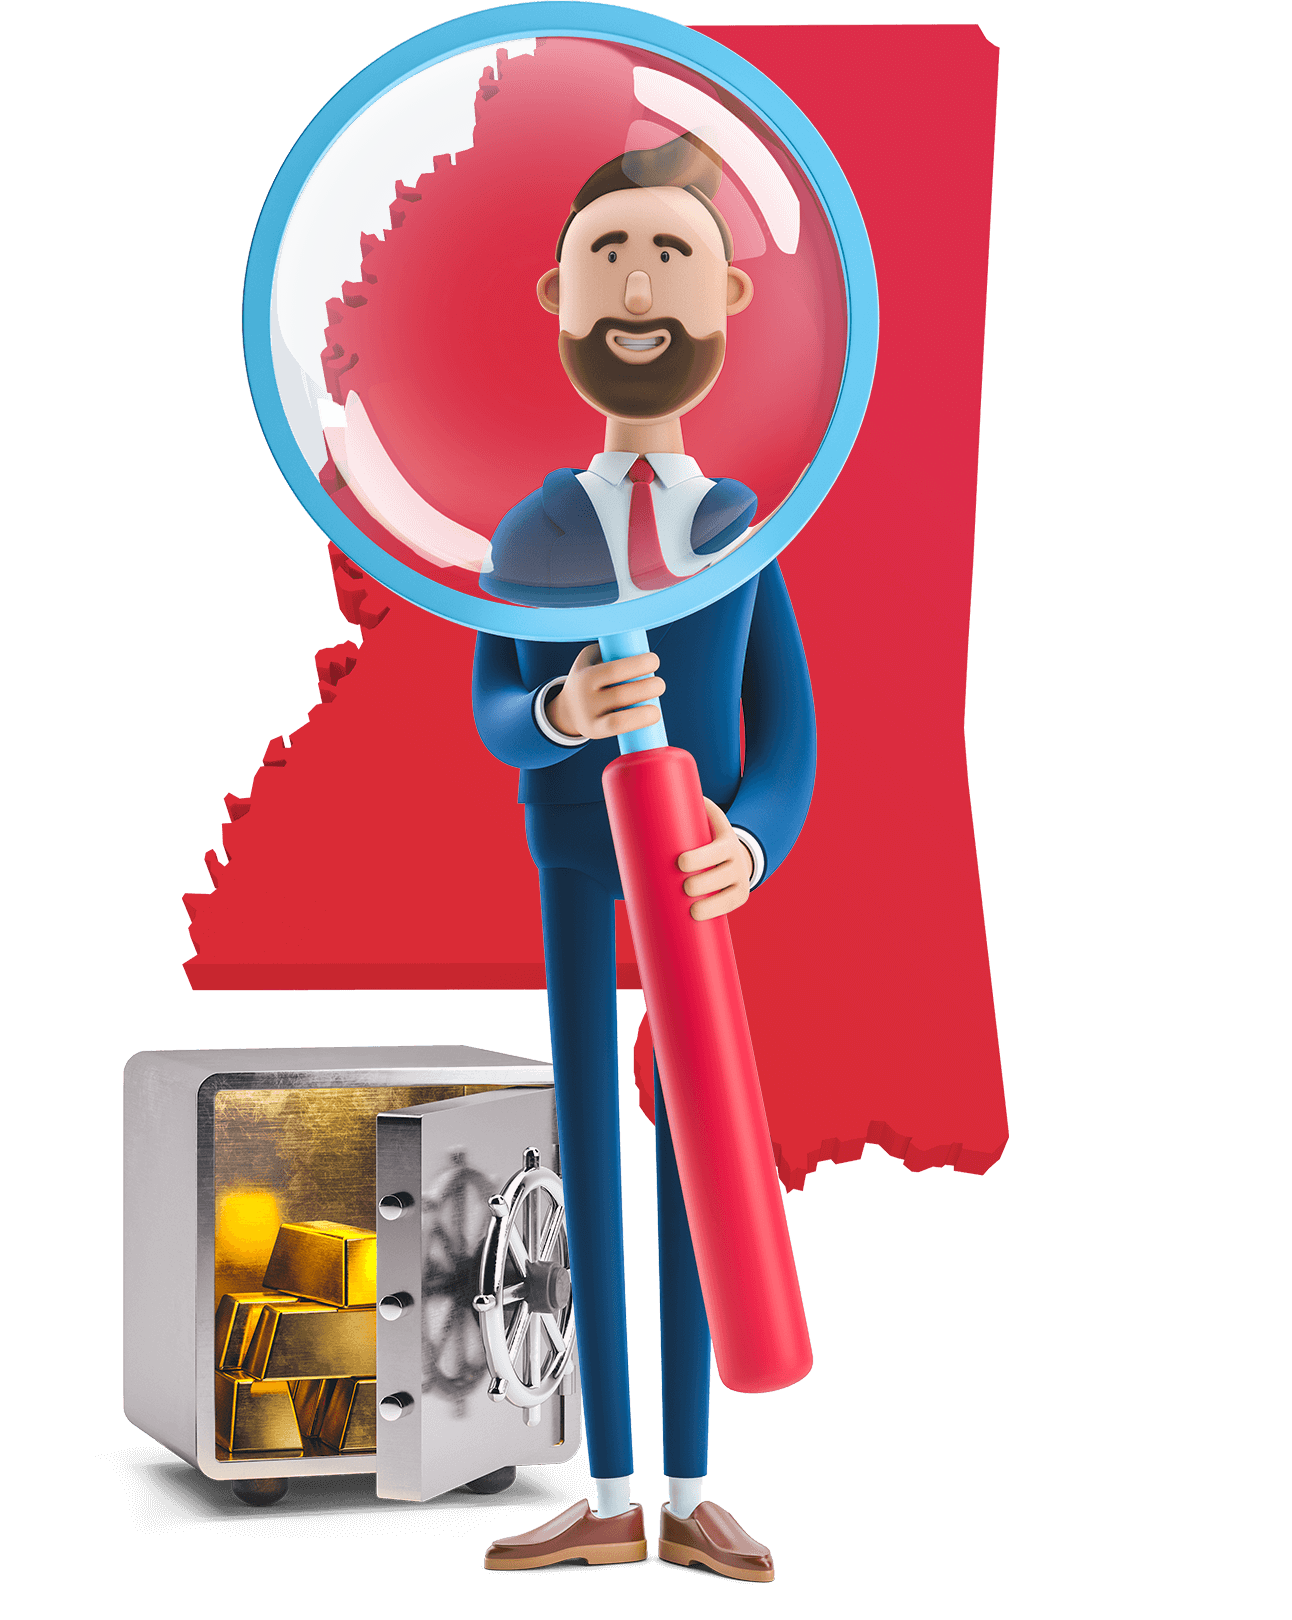 Mississippi state map outline with MetCredit USA businessman holding a magnifying glass with a safe full of gold bars beside him